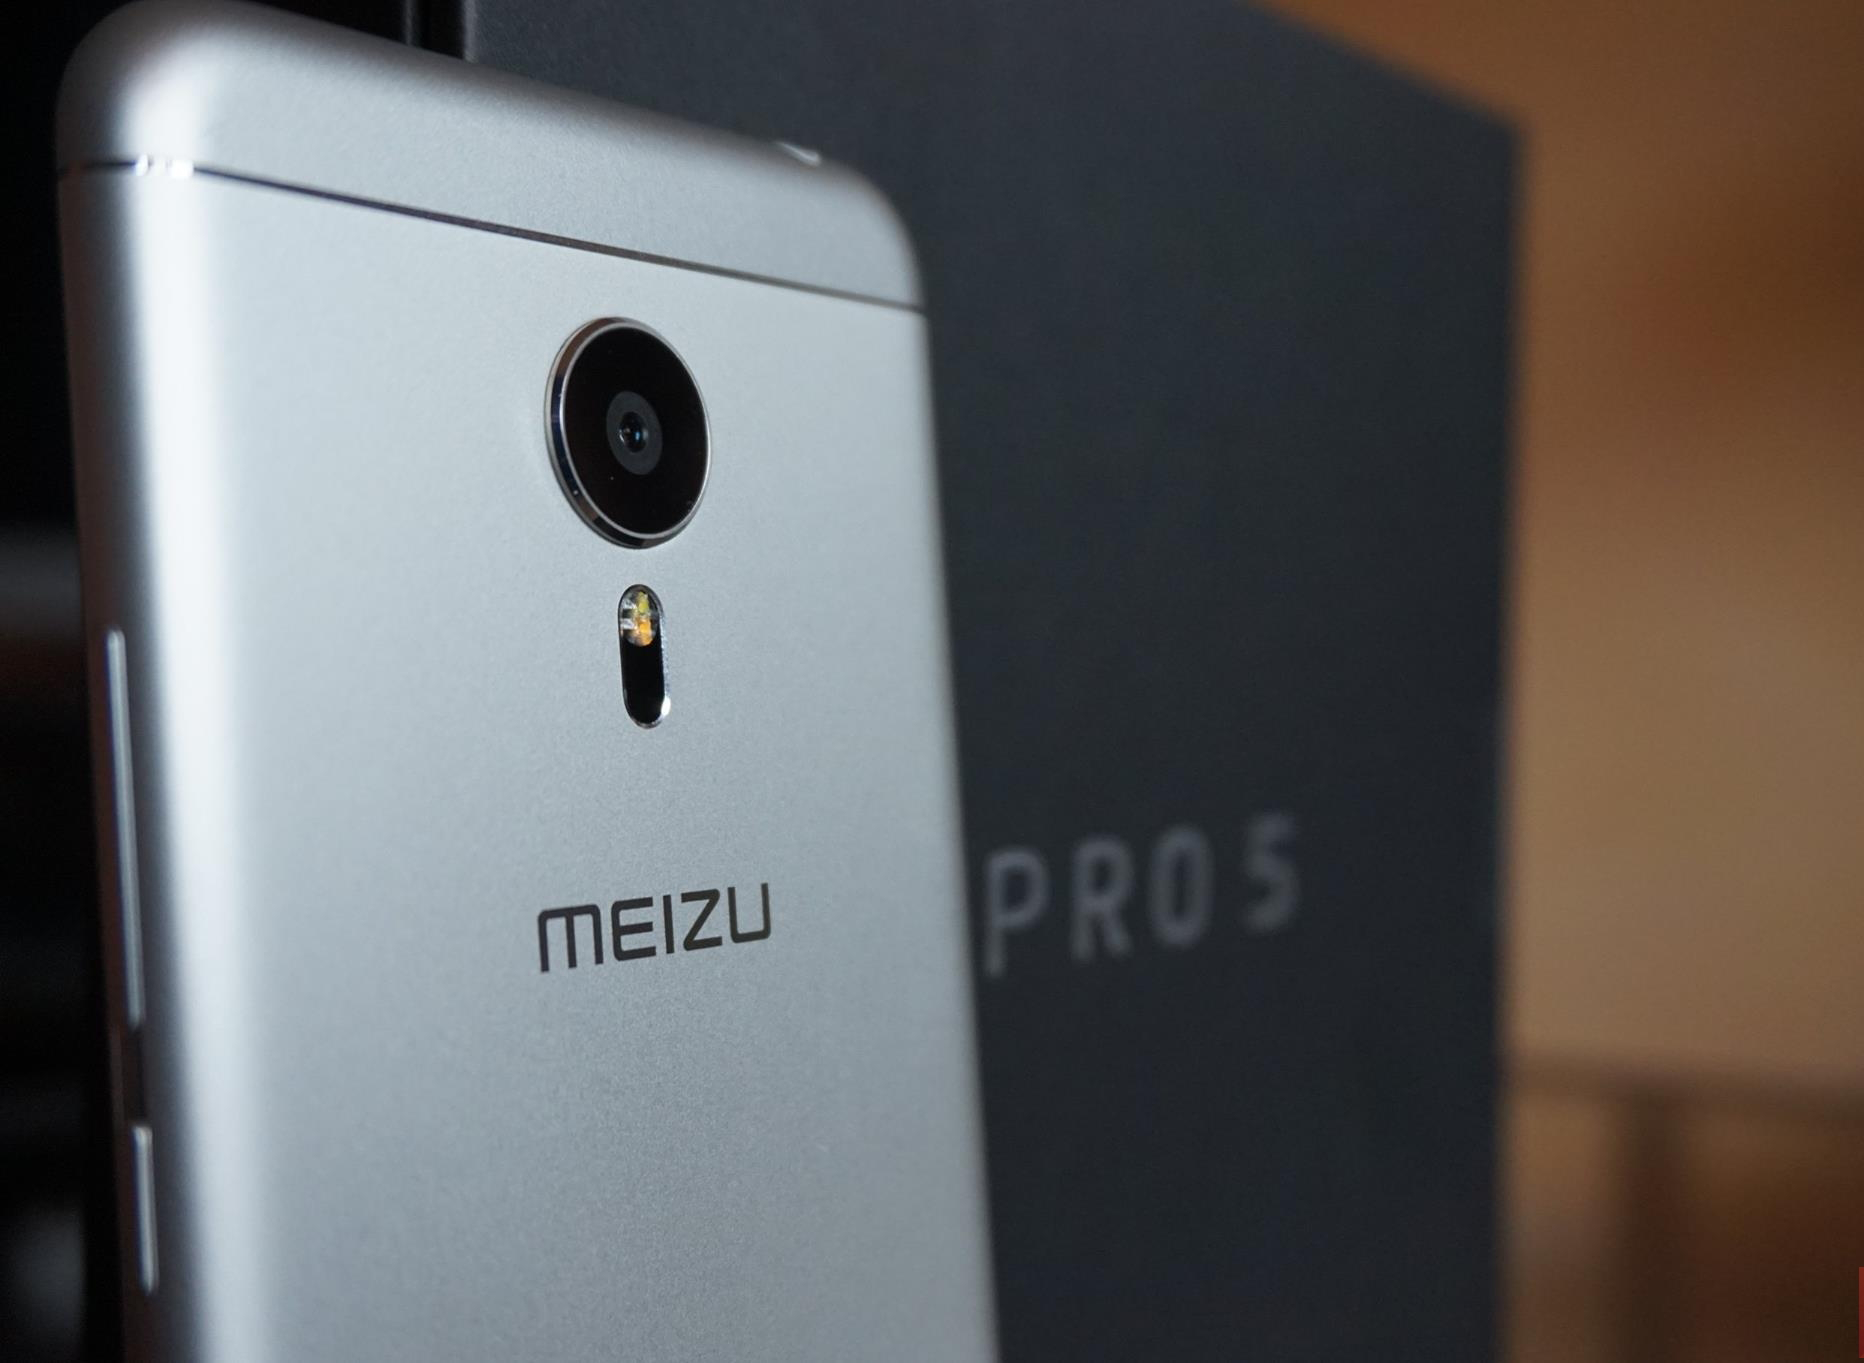 Photo of First review is especially positive for the Meizu PRO 5 smartphone